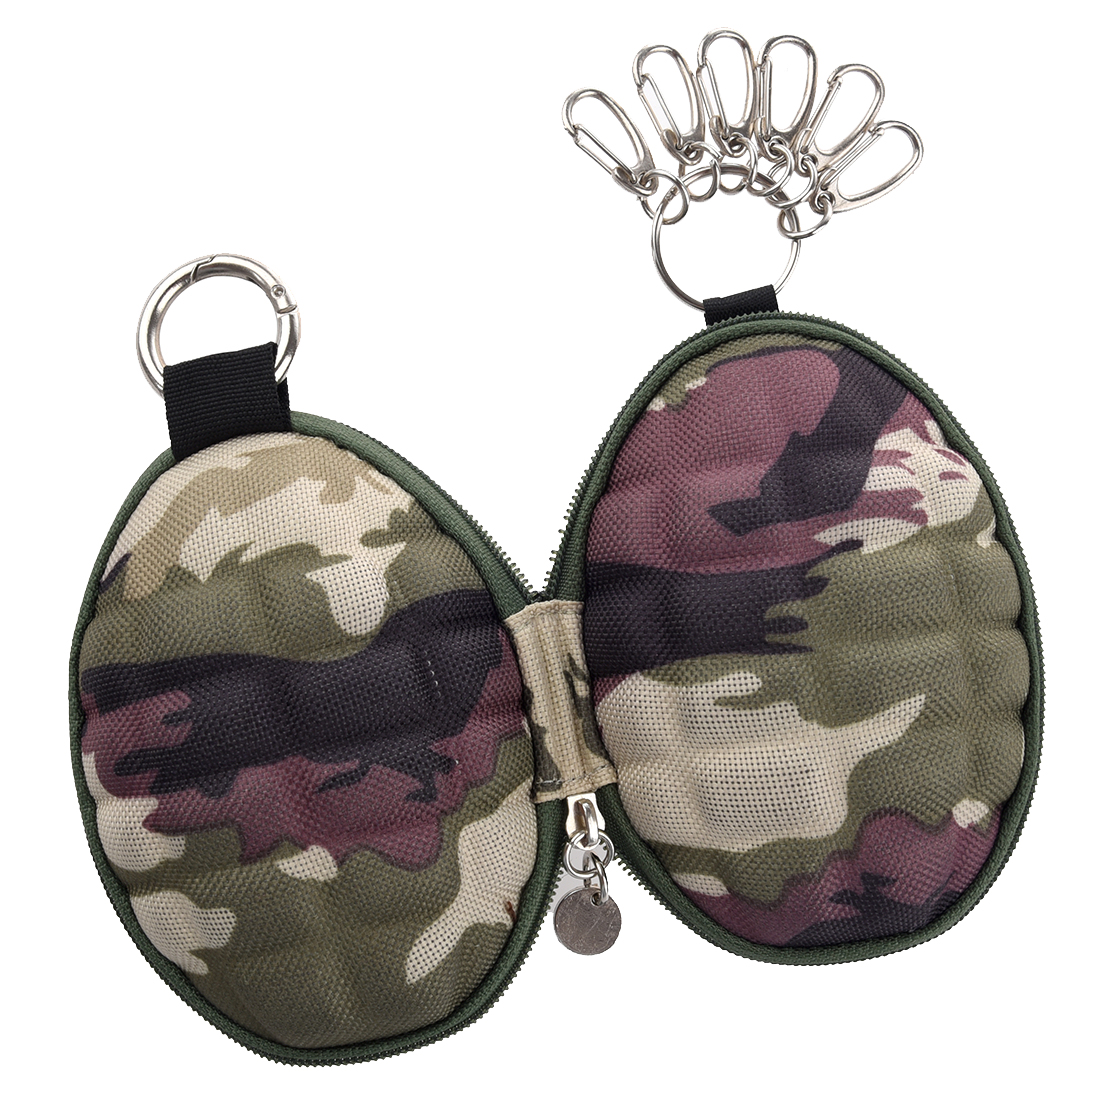 Camouflage Key & Coin Case Duck  Coin Case/ Key Case/Pass Case Carabiner Type With Six Consecutive Ho